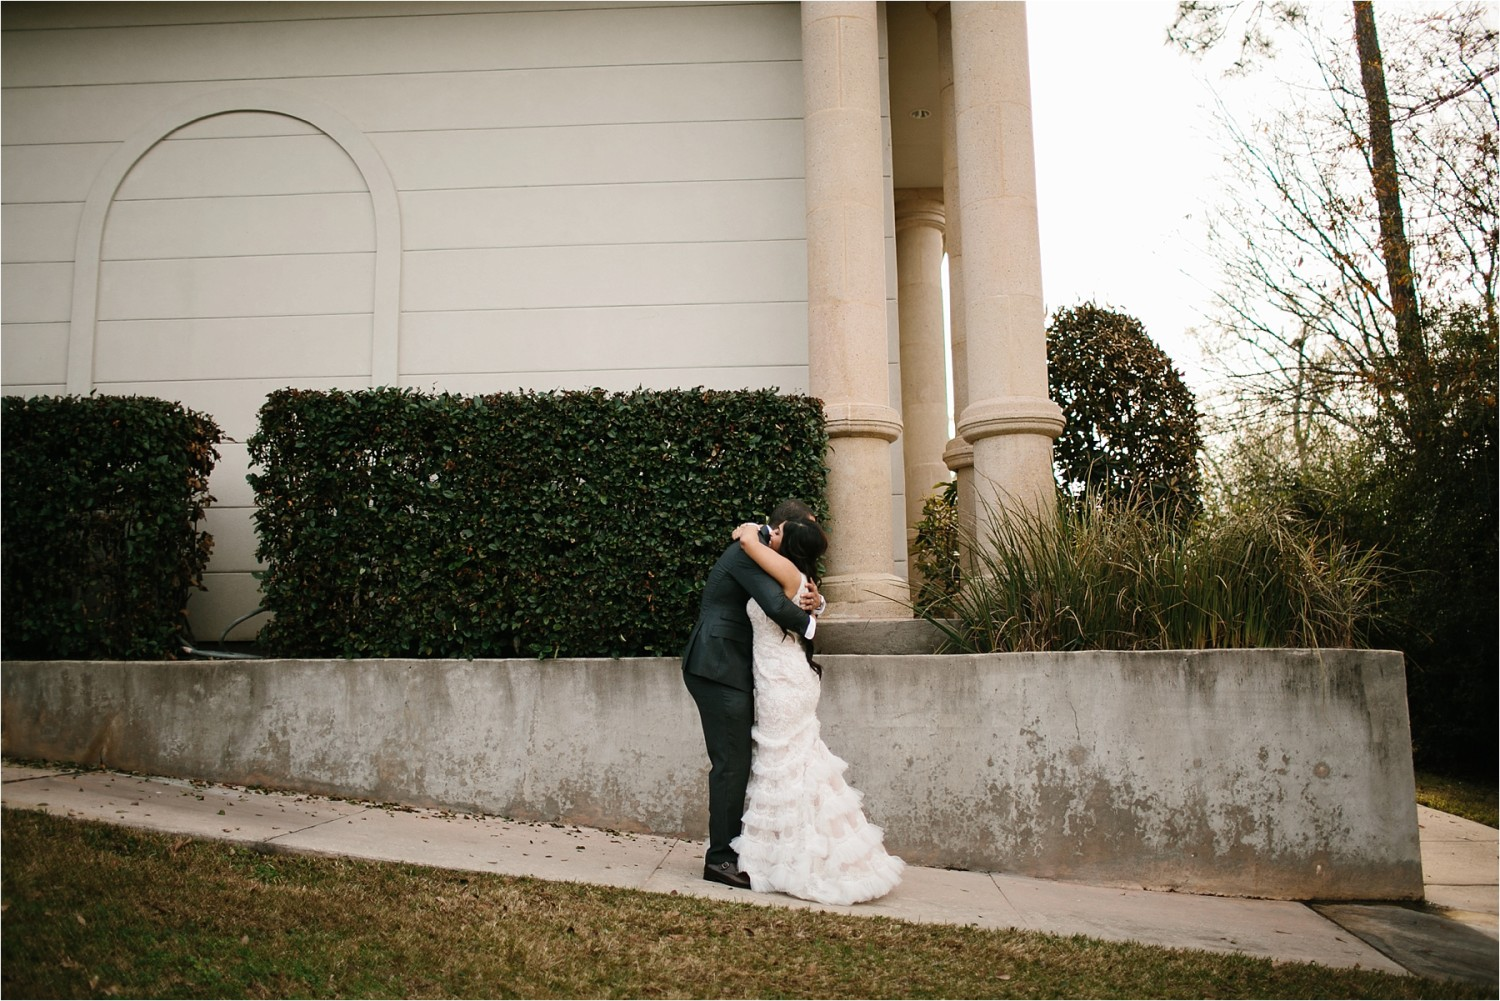 Jeanpaul + Ann __ a colorful wedding at Ashton Gardens in Houston TX by North Texas Wedding Photographer Rachel Meagan Photography _ 49